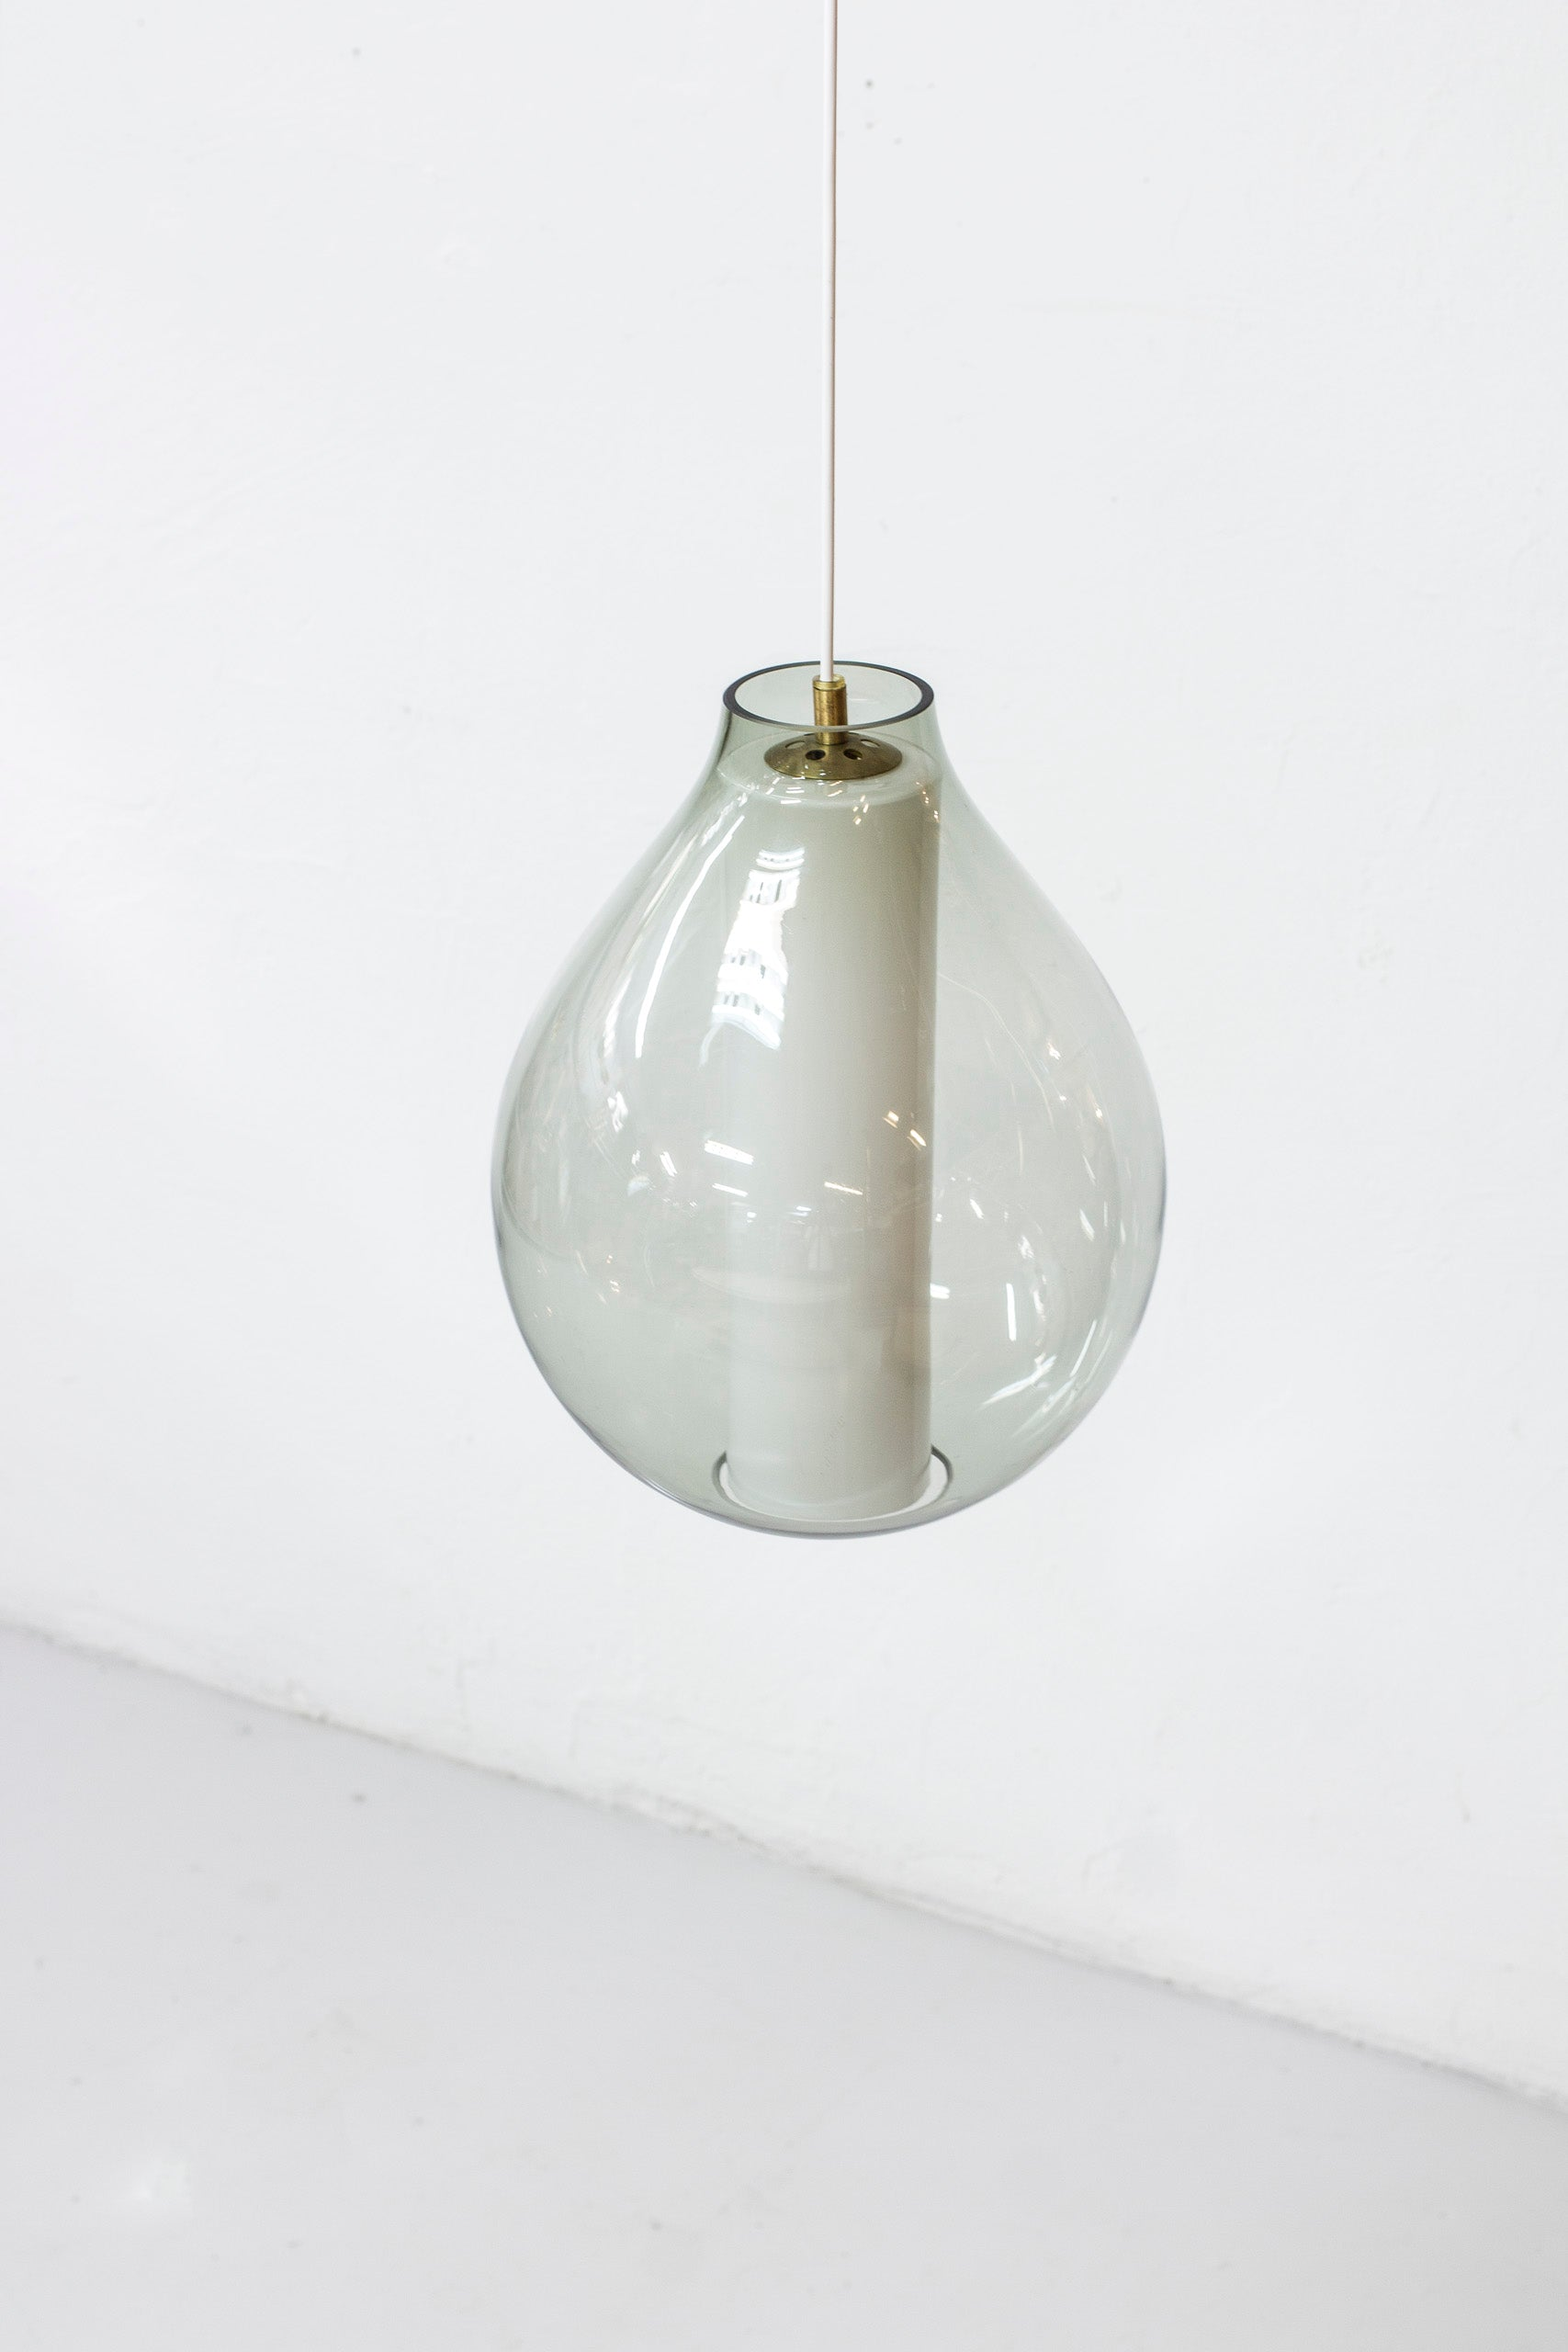 Rare Pendant lamp by Carl Fagerlund